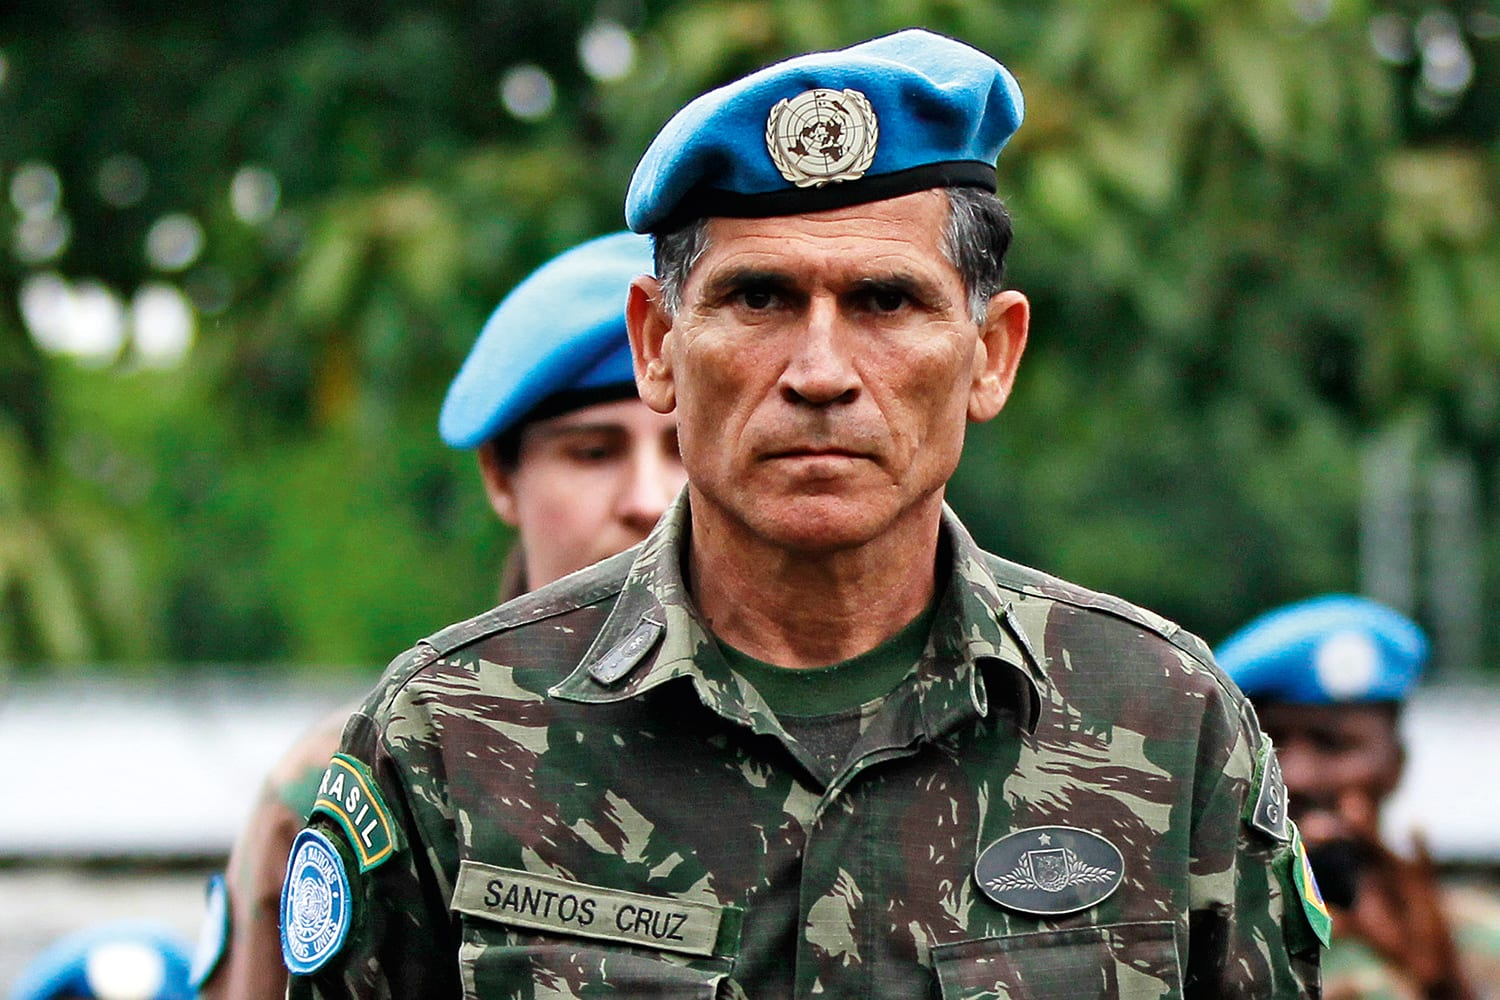 MONUSCO's Force Commander Santos Cruz attends a special parade in the eastern DRC